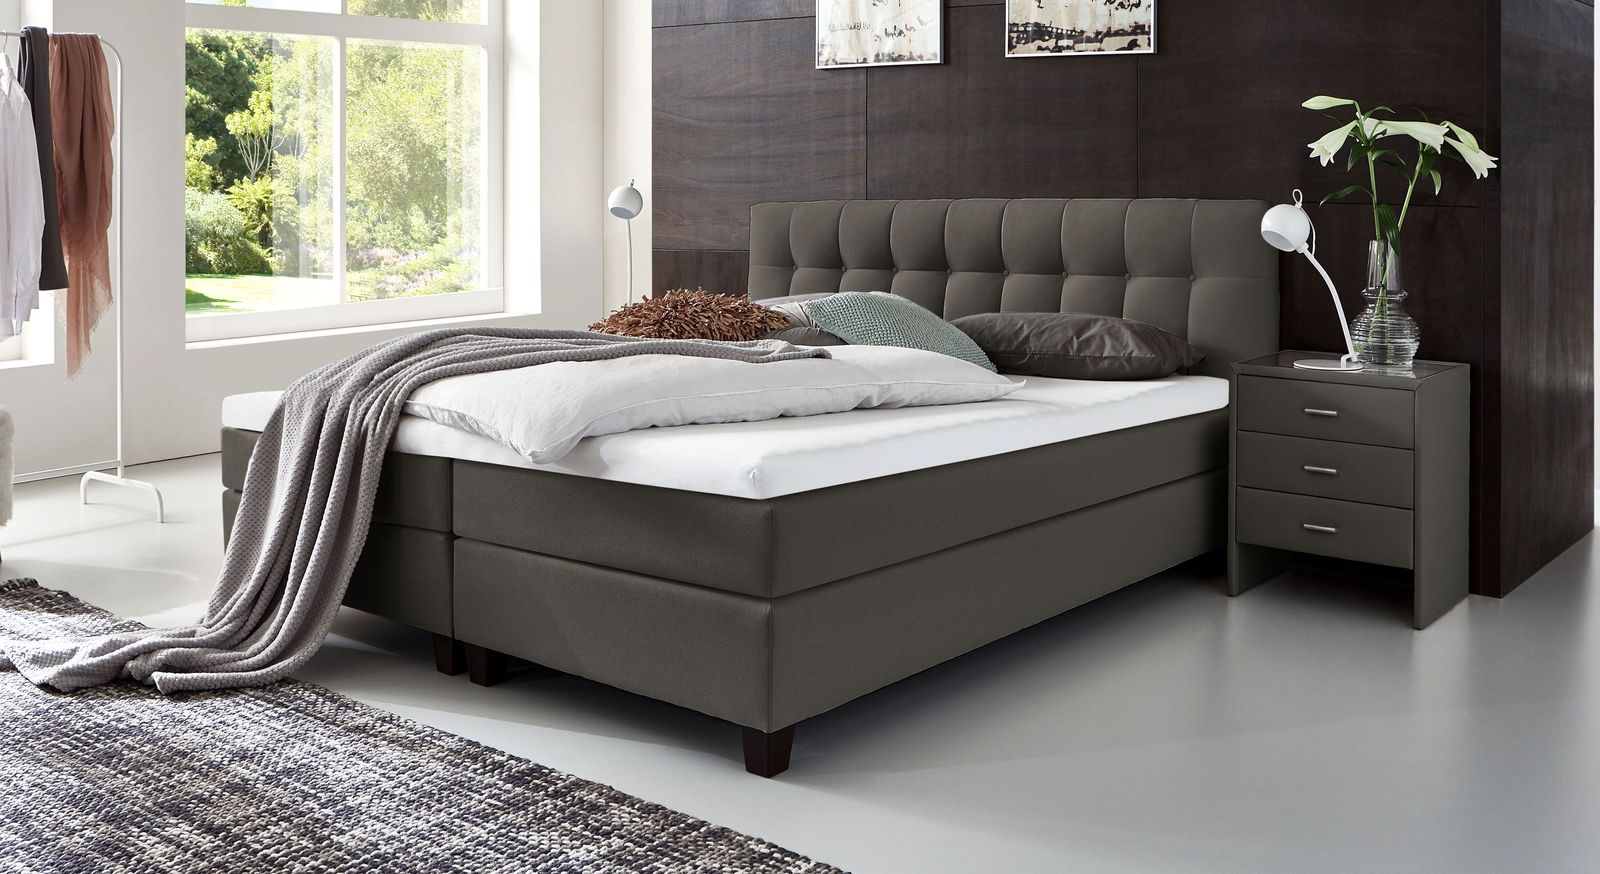 53 cm hohes Boxspringbett Luciano aus Webstoff in Anthrazit